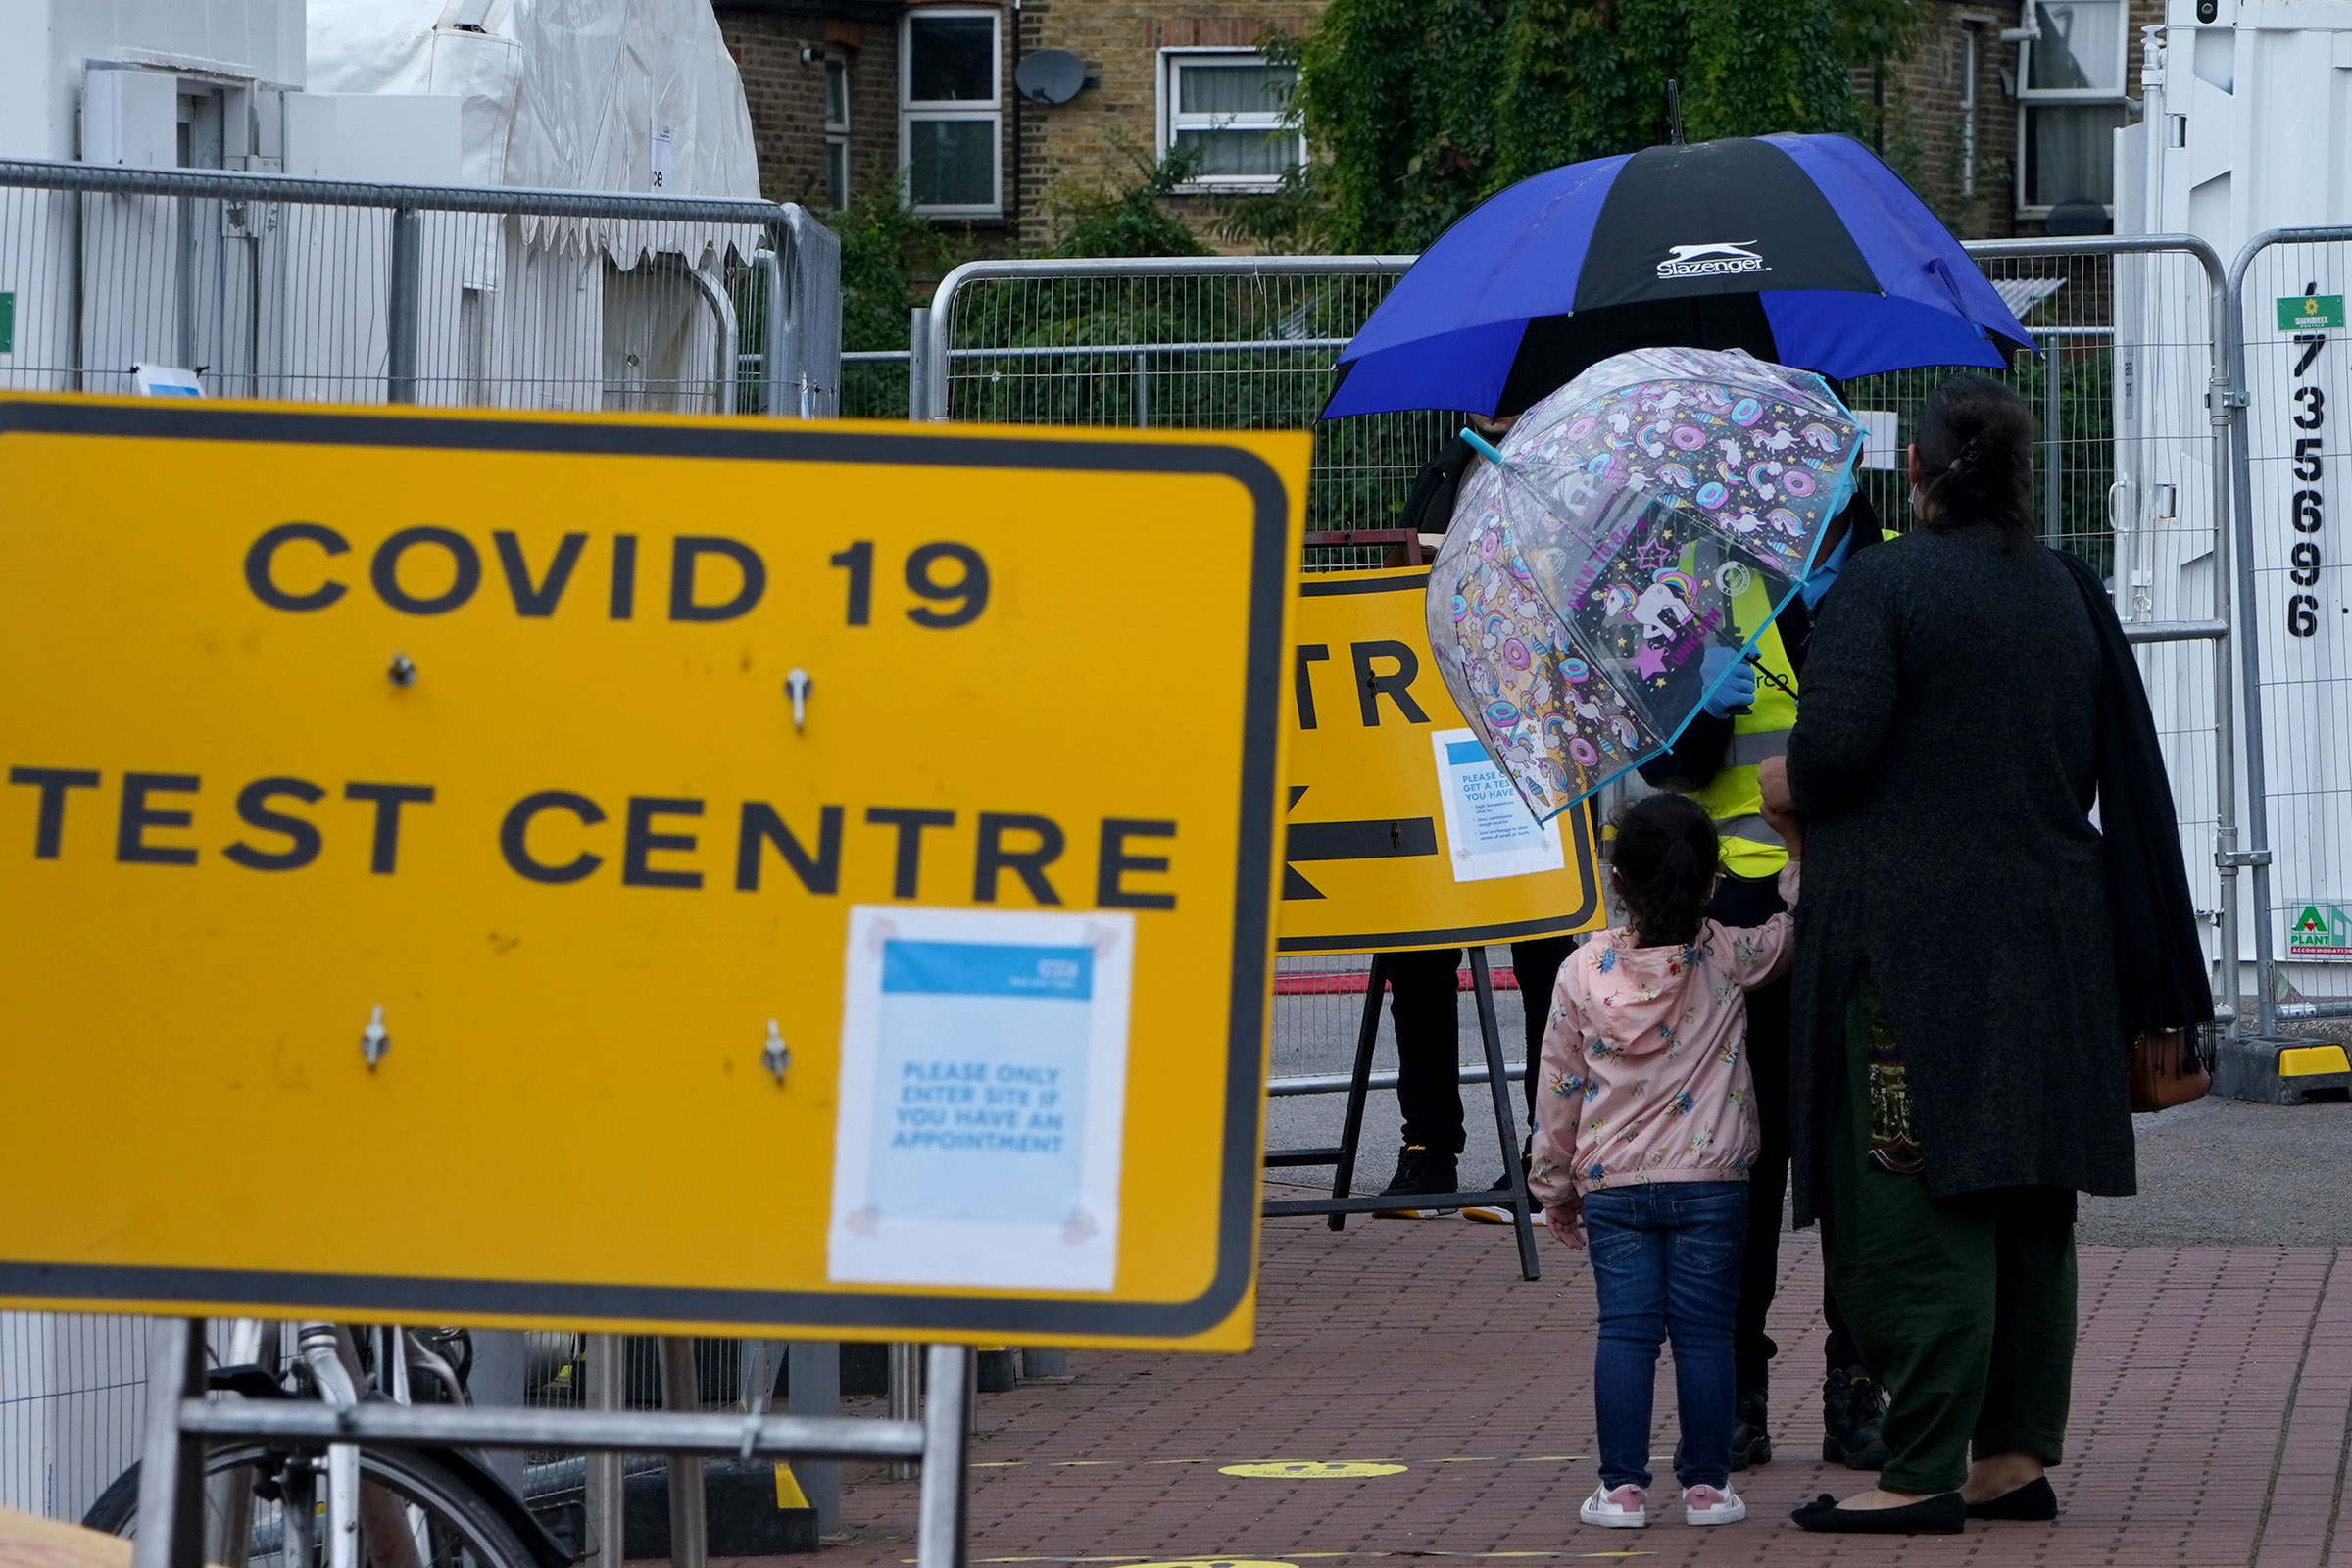 People wait outside a Covid-19 testing center in Walthamstow on September 23, in London, England.